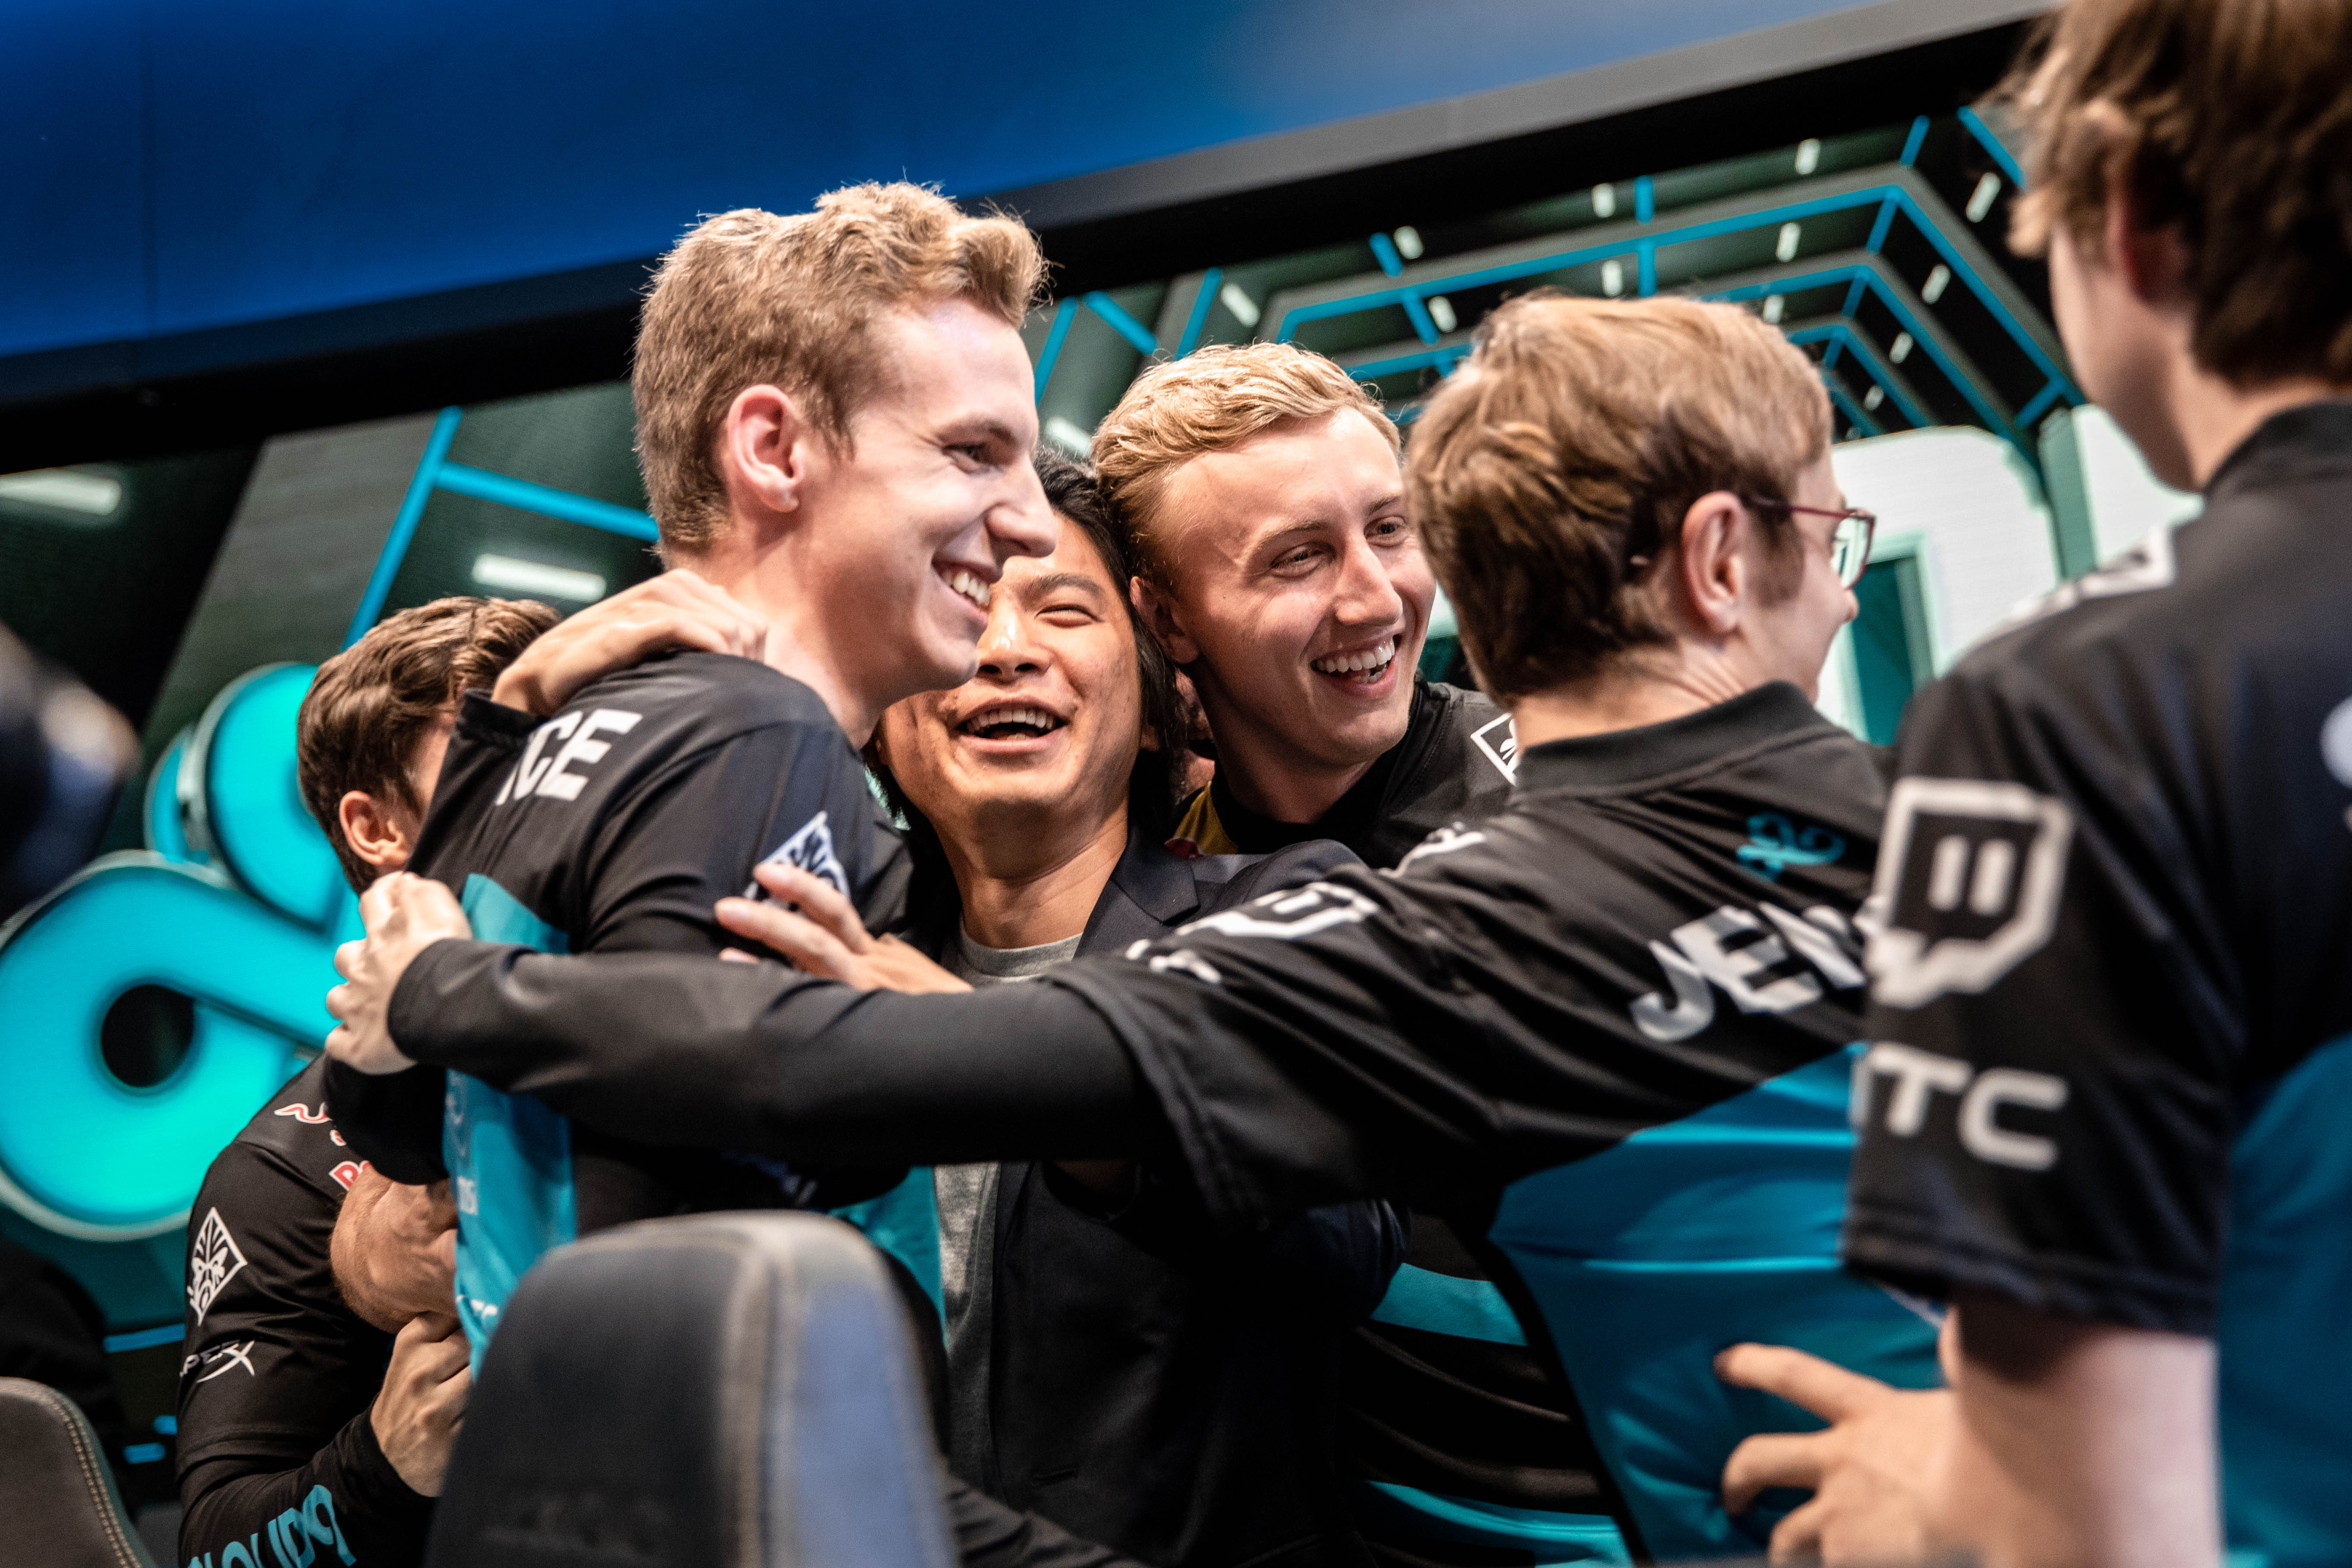 The Cloud 9 team celebrating during the 2018 North America LCS Regional Qualifiers in Los Angeles, California.